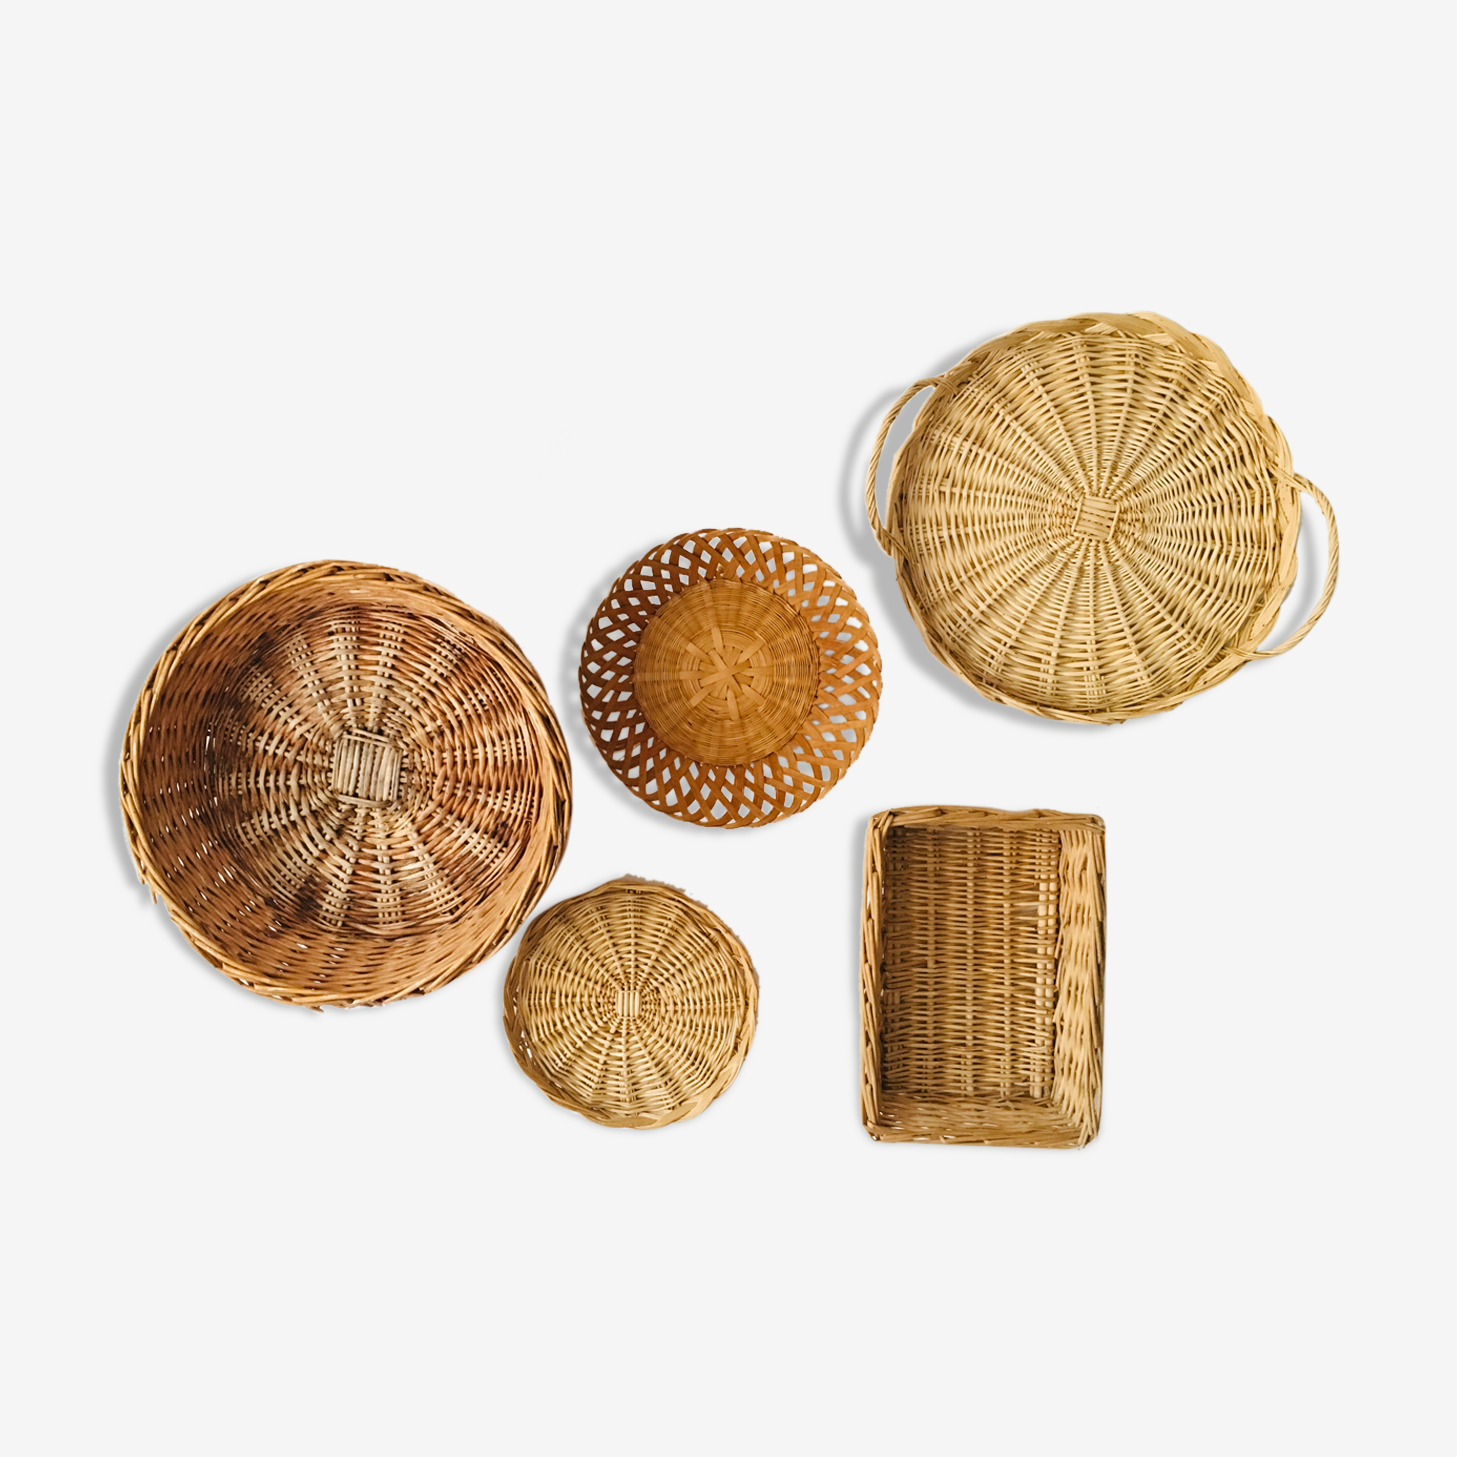 Wall composition of wicker baskets